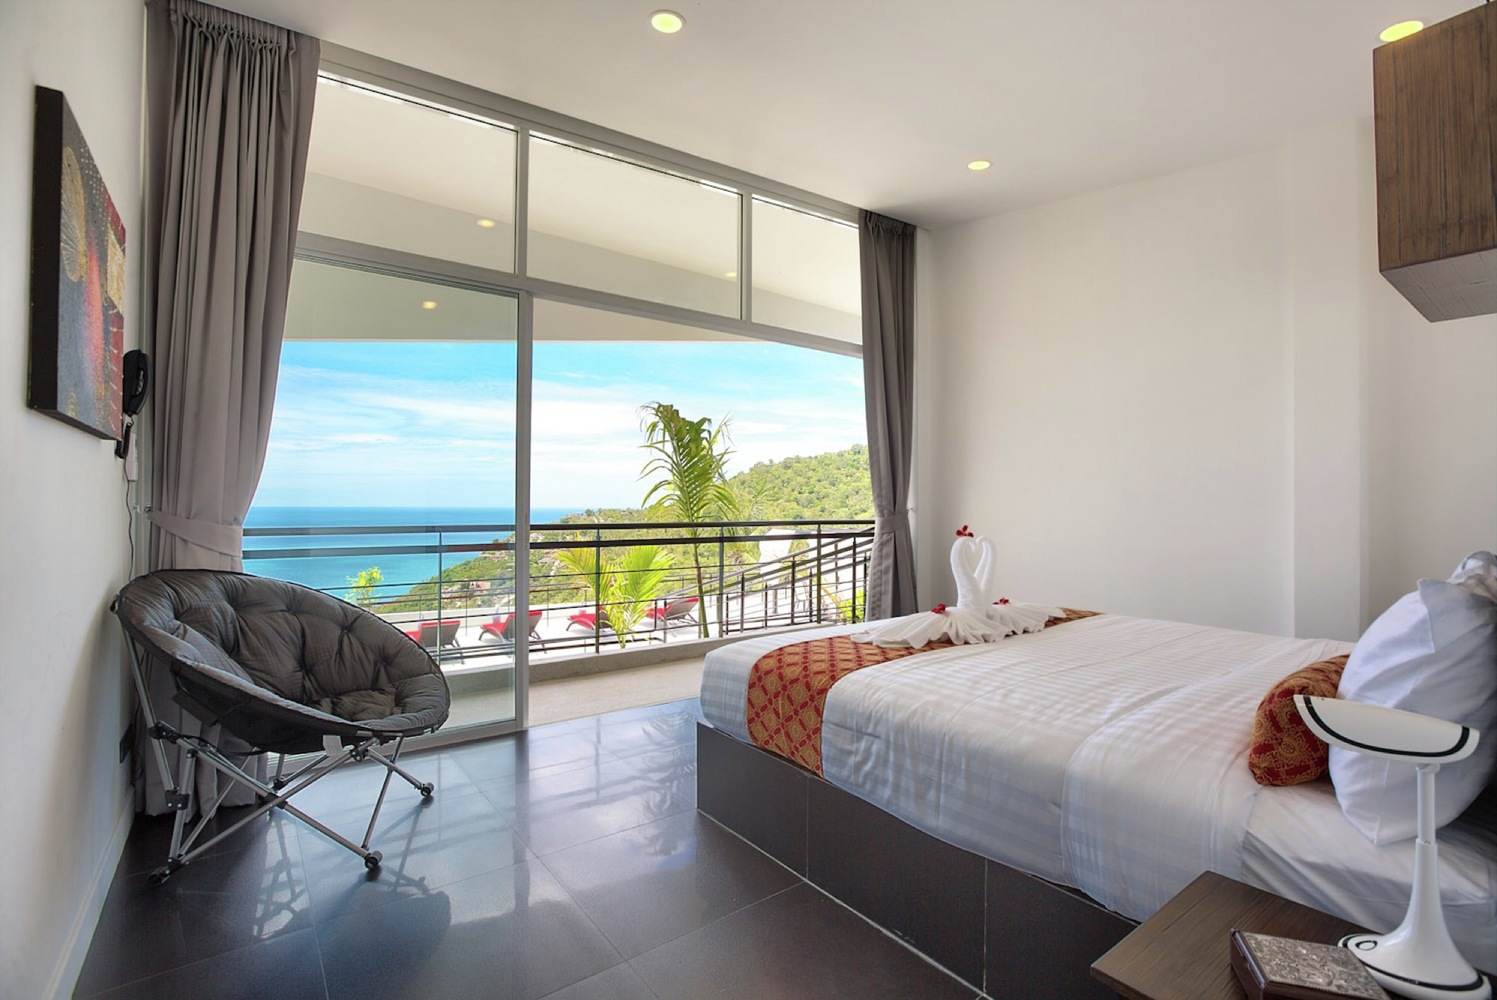 bedroom-suan-kachamudee-thailand The New Resort Suan Kachamudee in Thailandbedroom suan kachamudee thailand